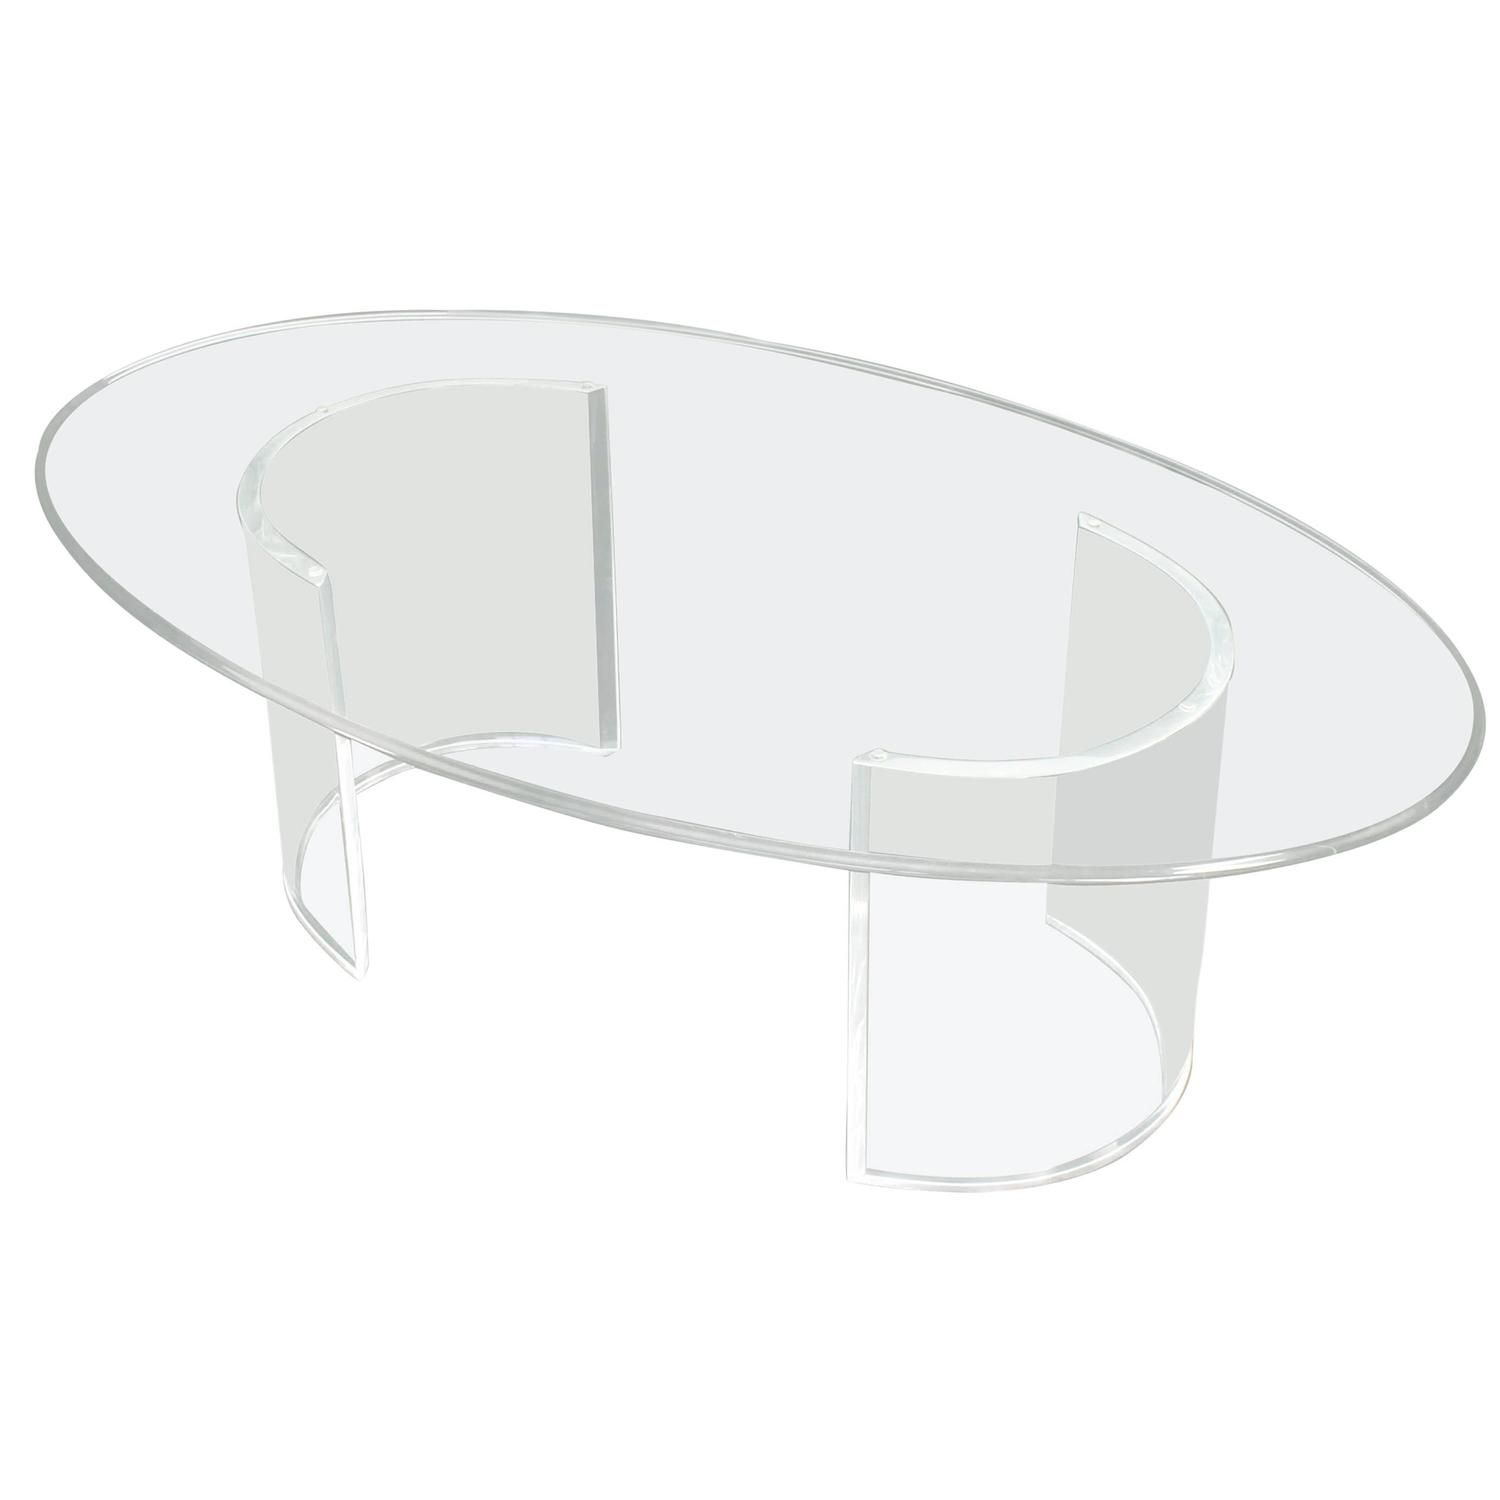 Oval glass top coffee table on lucite legs at 1stdibs Glass oval coffee tables